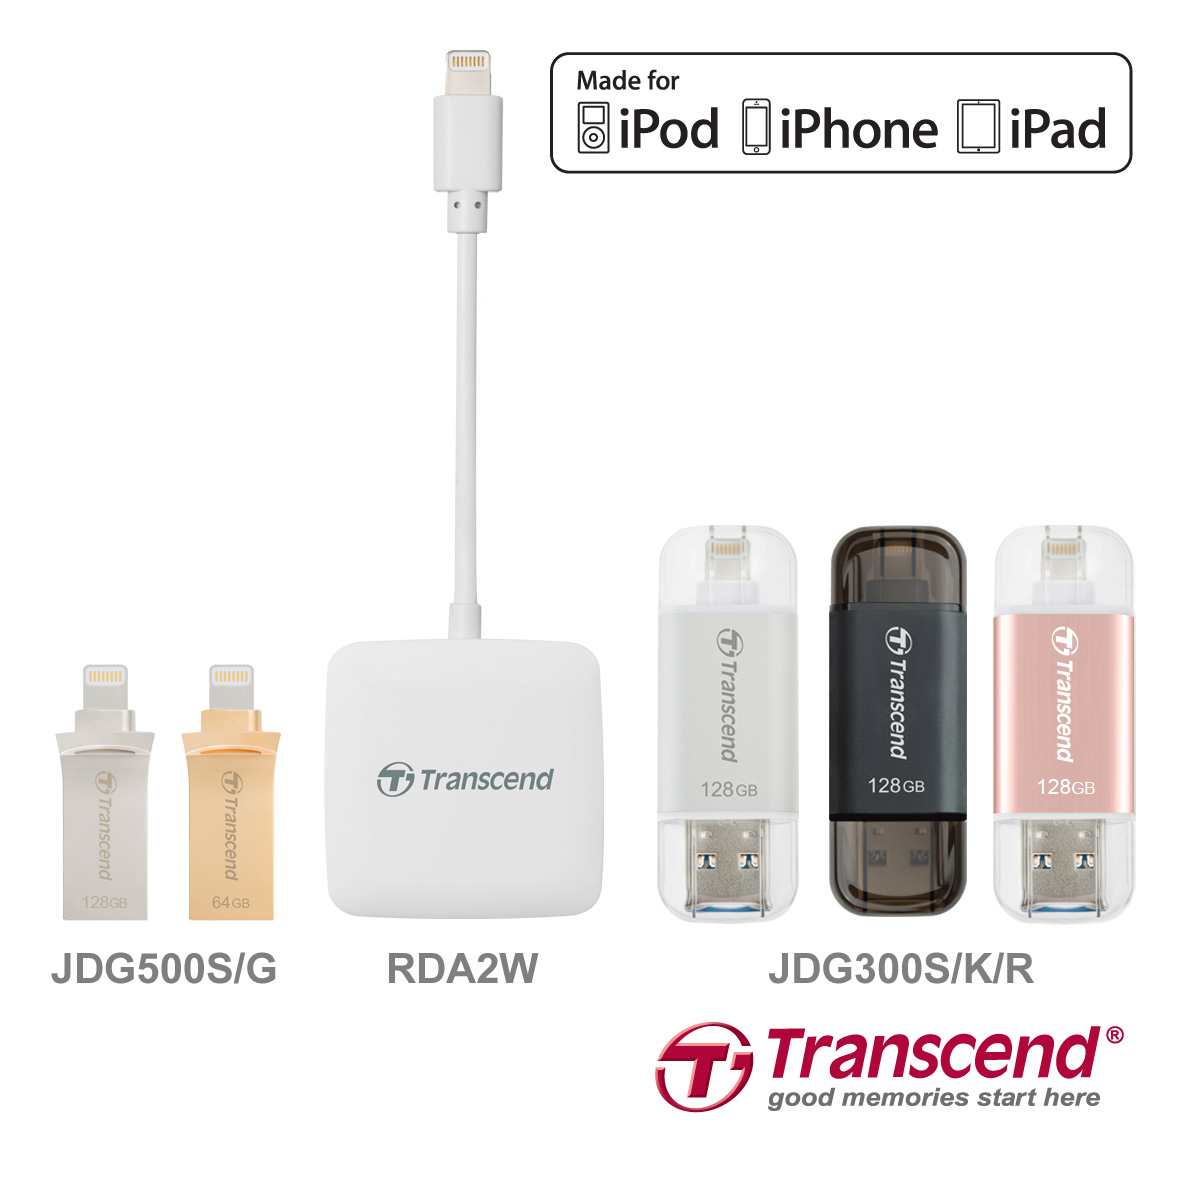 Transcend Lightning-enable Storage Solution for iOS Devices